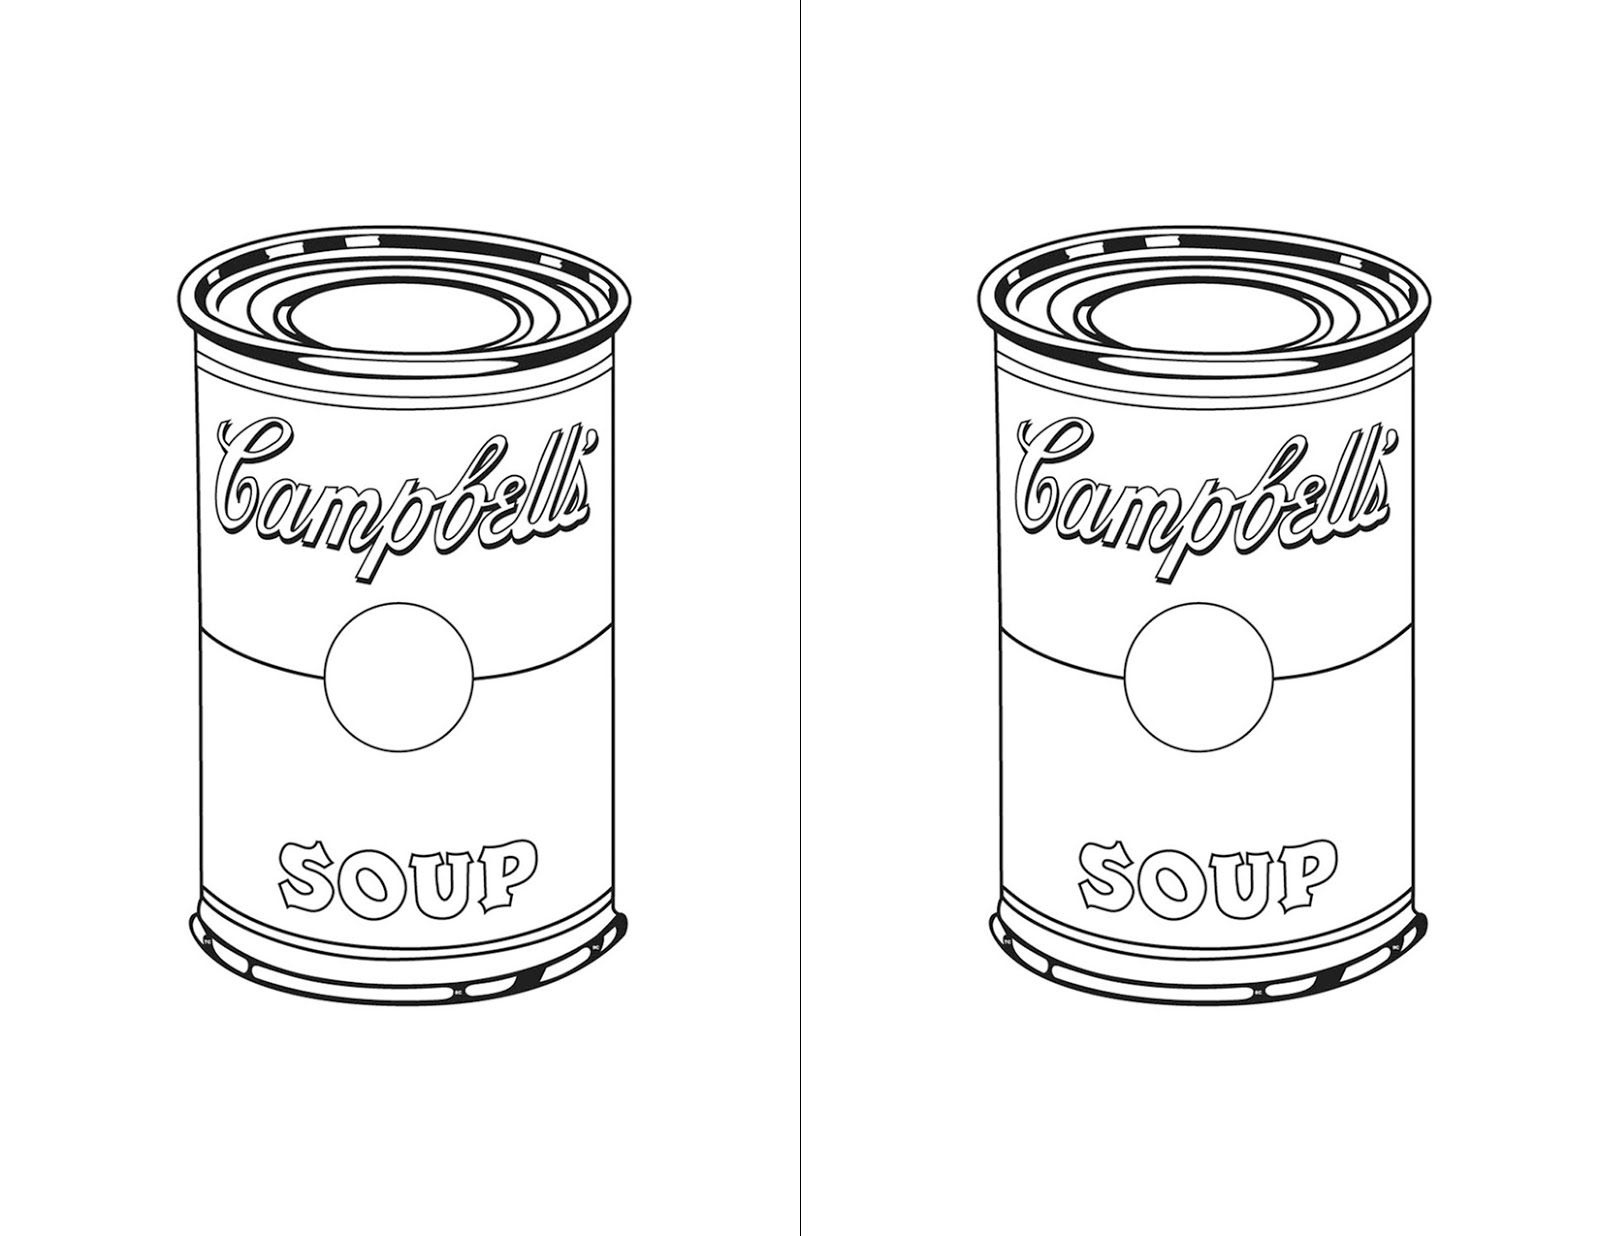 Cans To Use For Templates To Create Art Word Work Math Andy Warhol Soup Cans Andy Warhol Pop Art Art Classroom